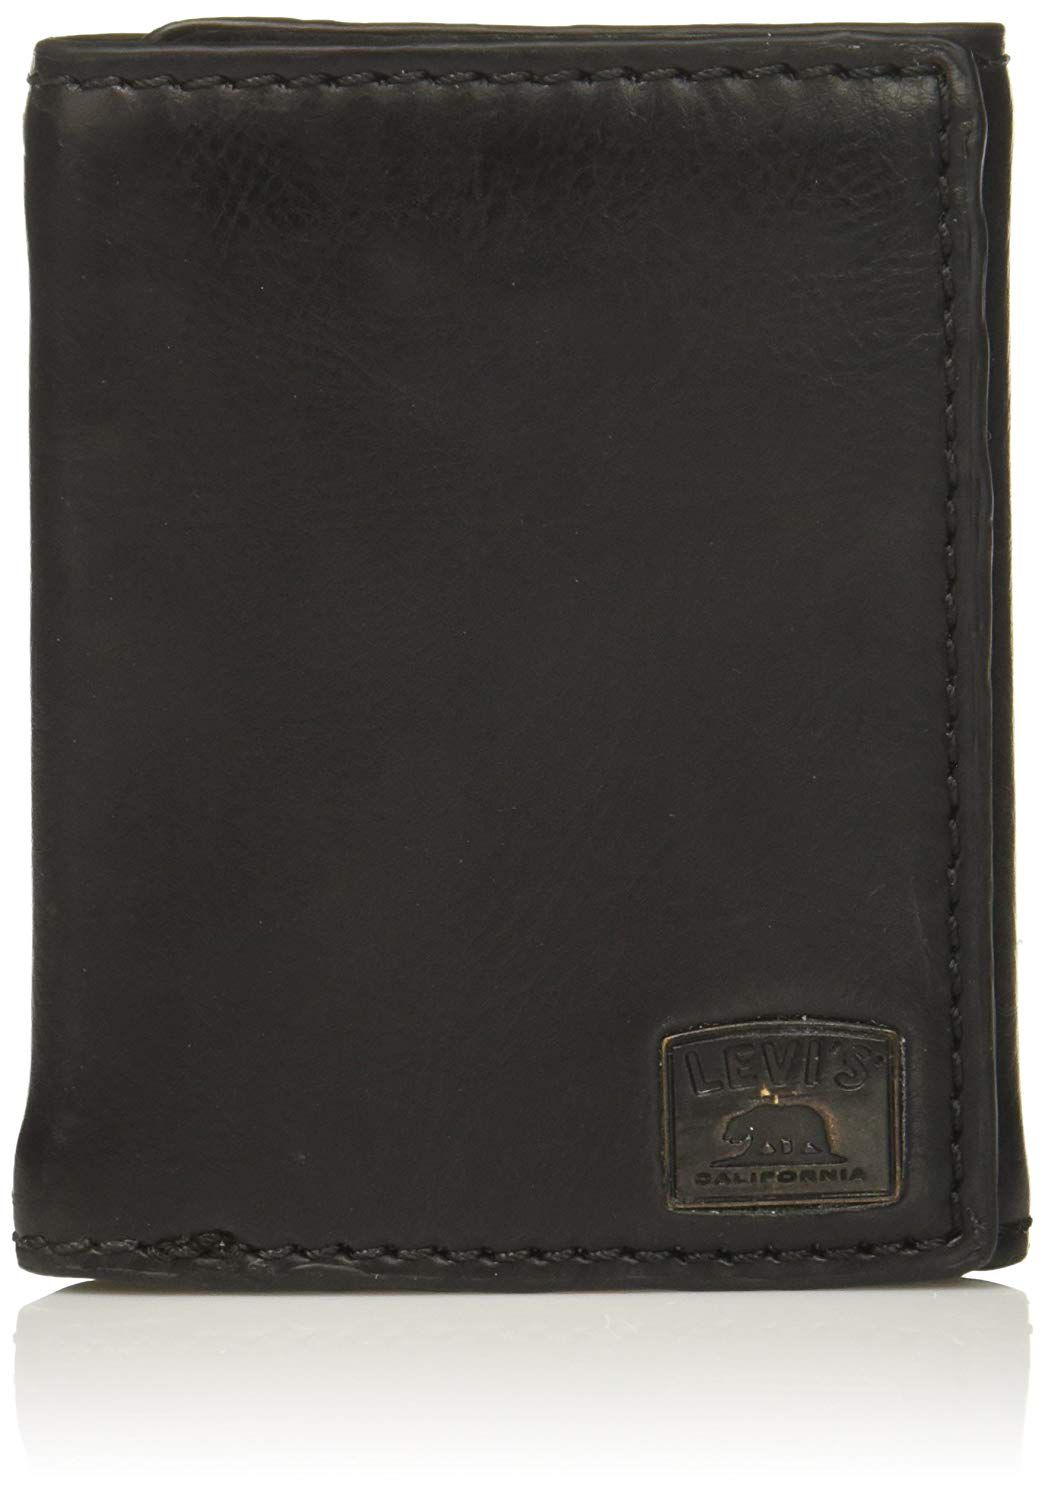 985deb1e00d4 The 8 Best Men s Leather Wallets of 2019